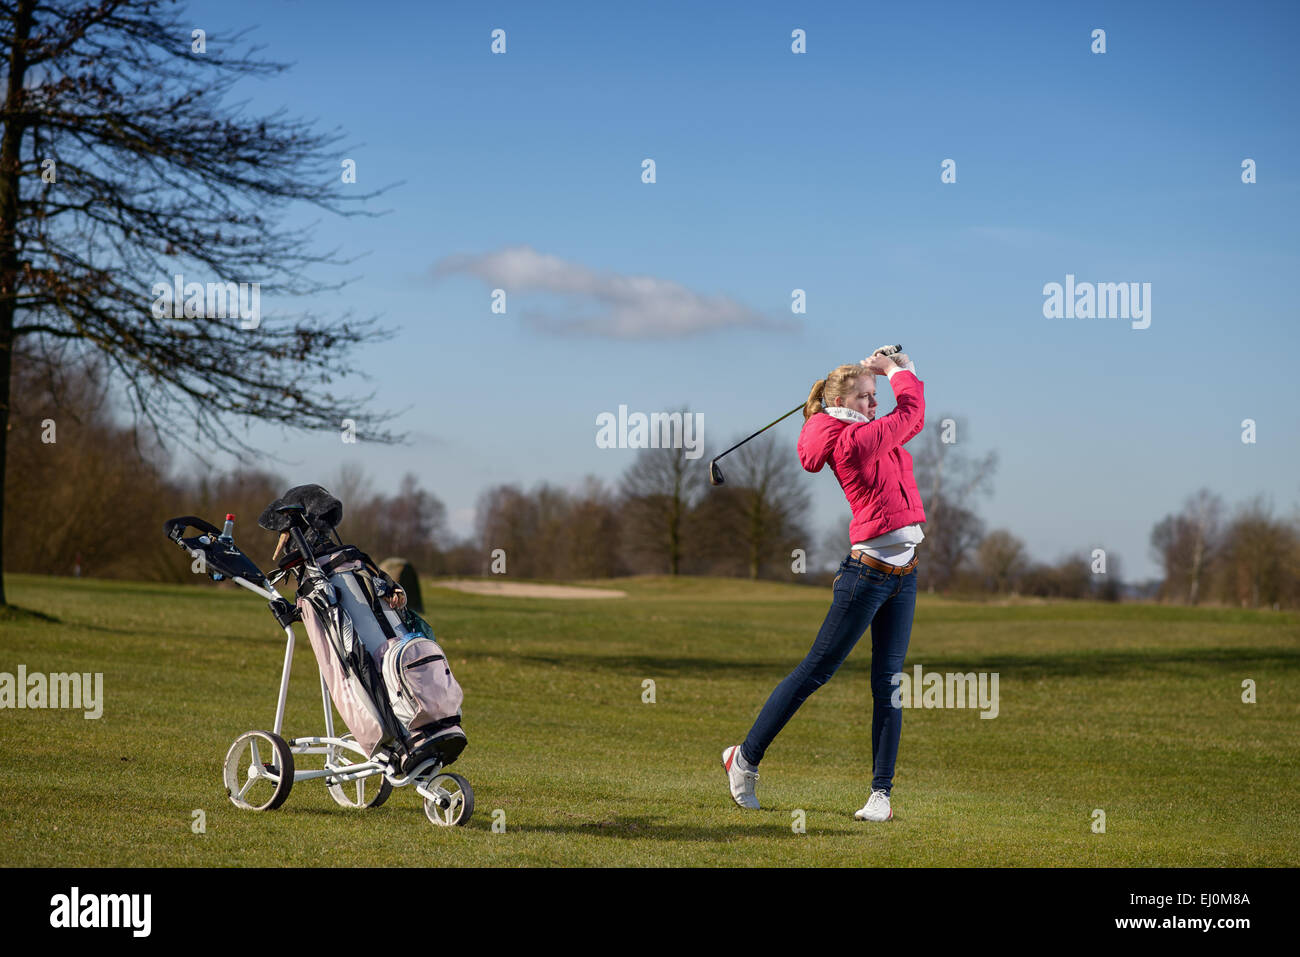 Attractive slender young woman golfer playing an approach shot on the fairway watching the flight of her ball after - Stock Image